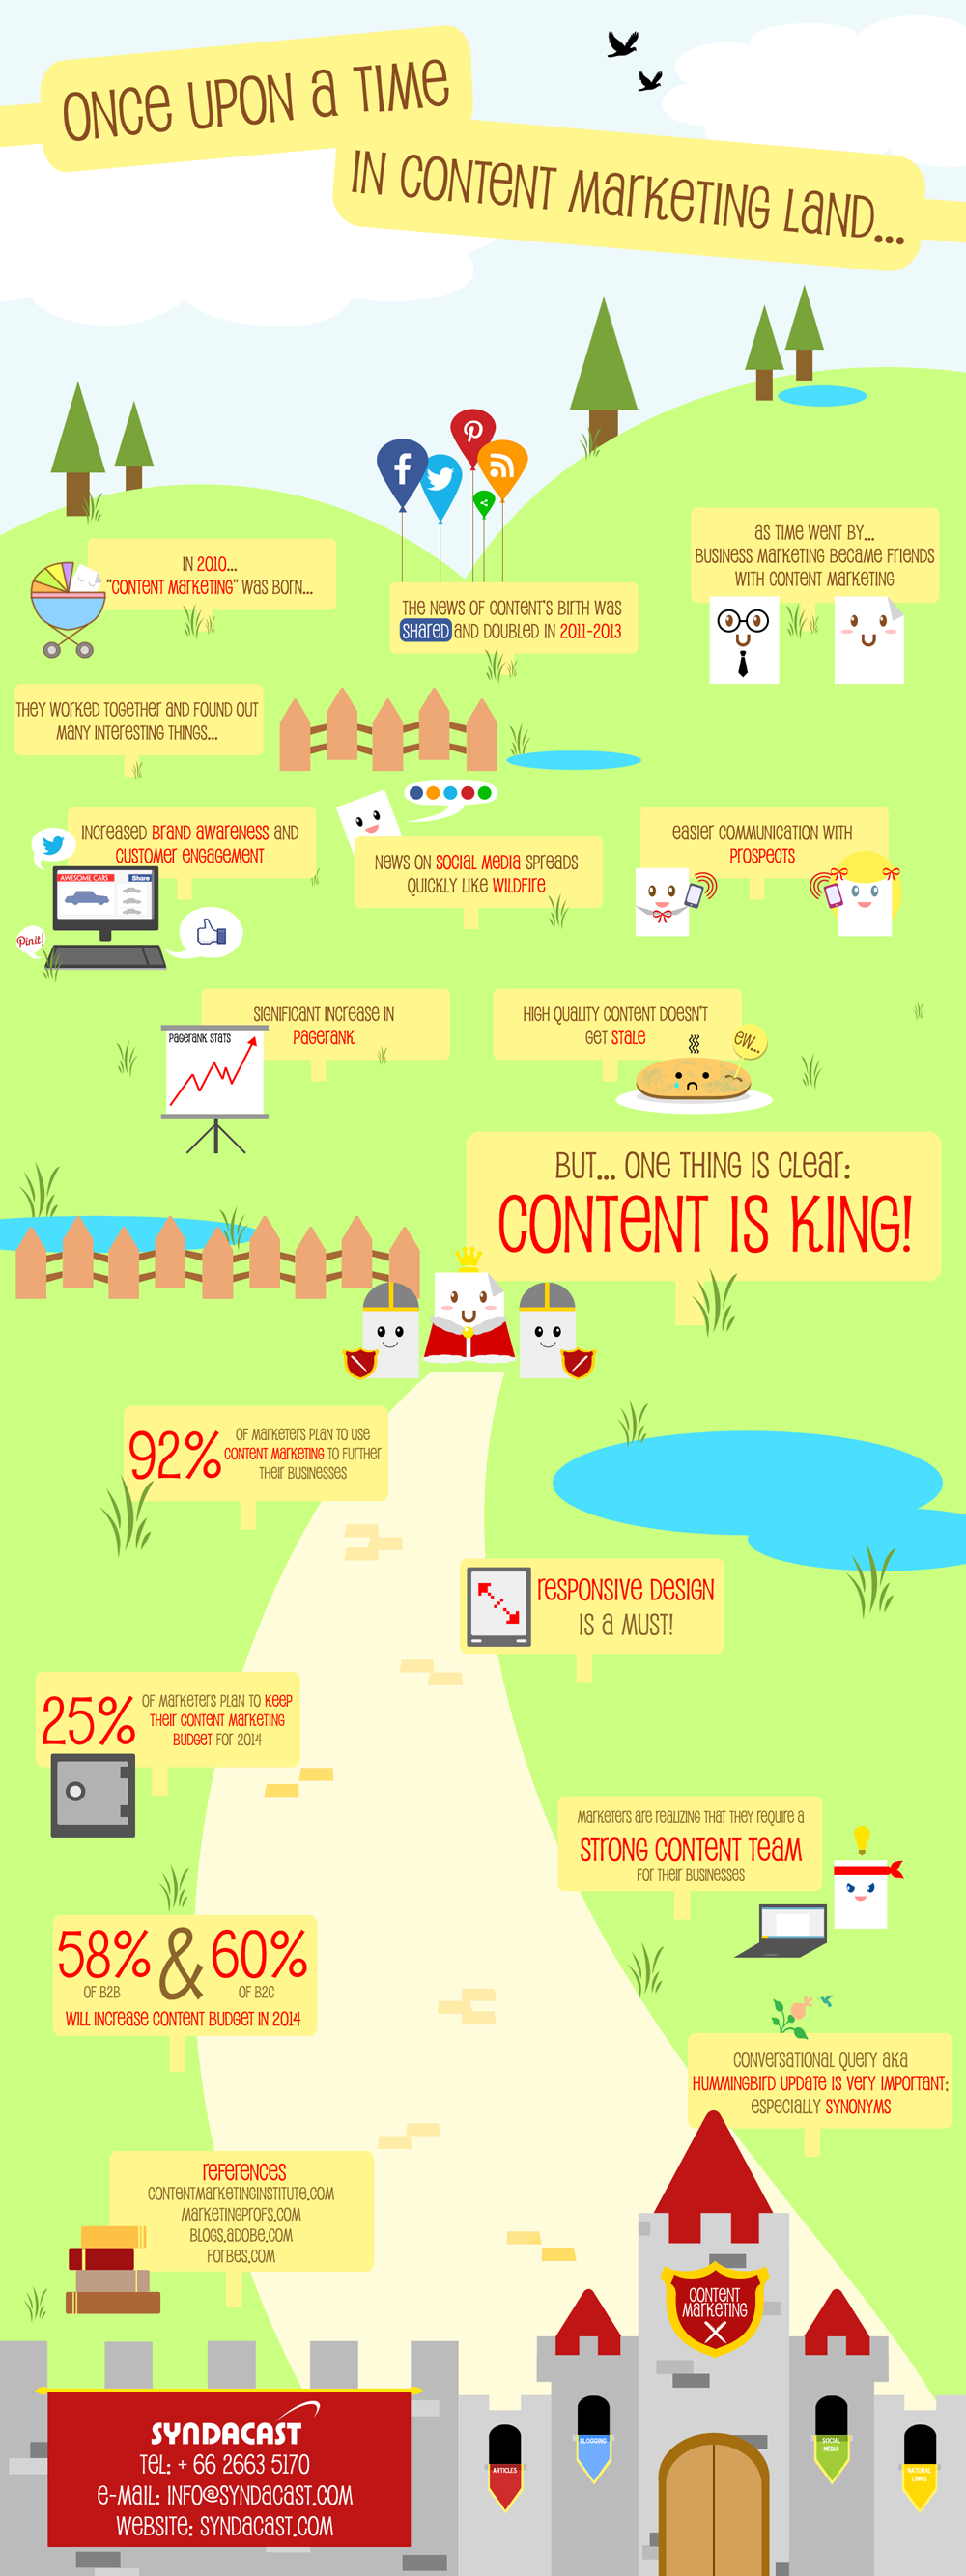 Once Upon A Time in Content Marketing Land